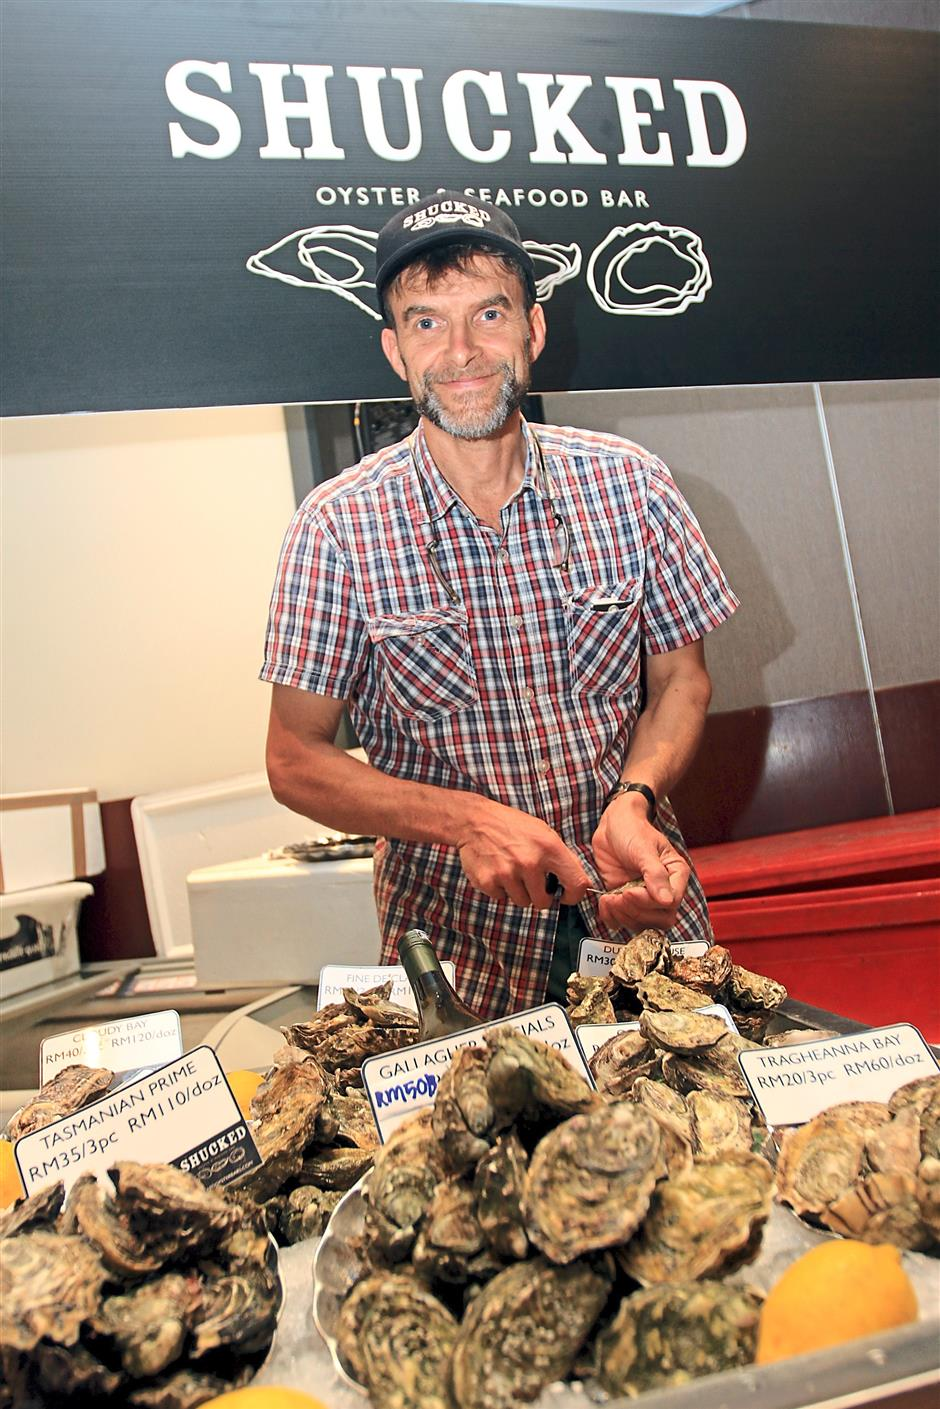 Green says Southern Rock Seafood Sdn Bhd offers eight types of oysters from around the world.